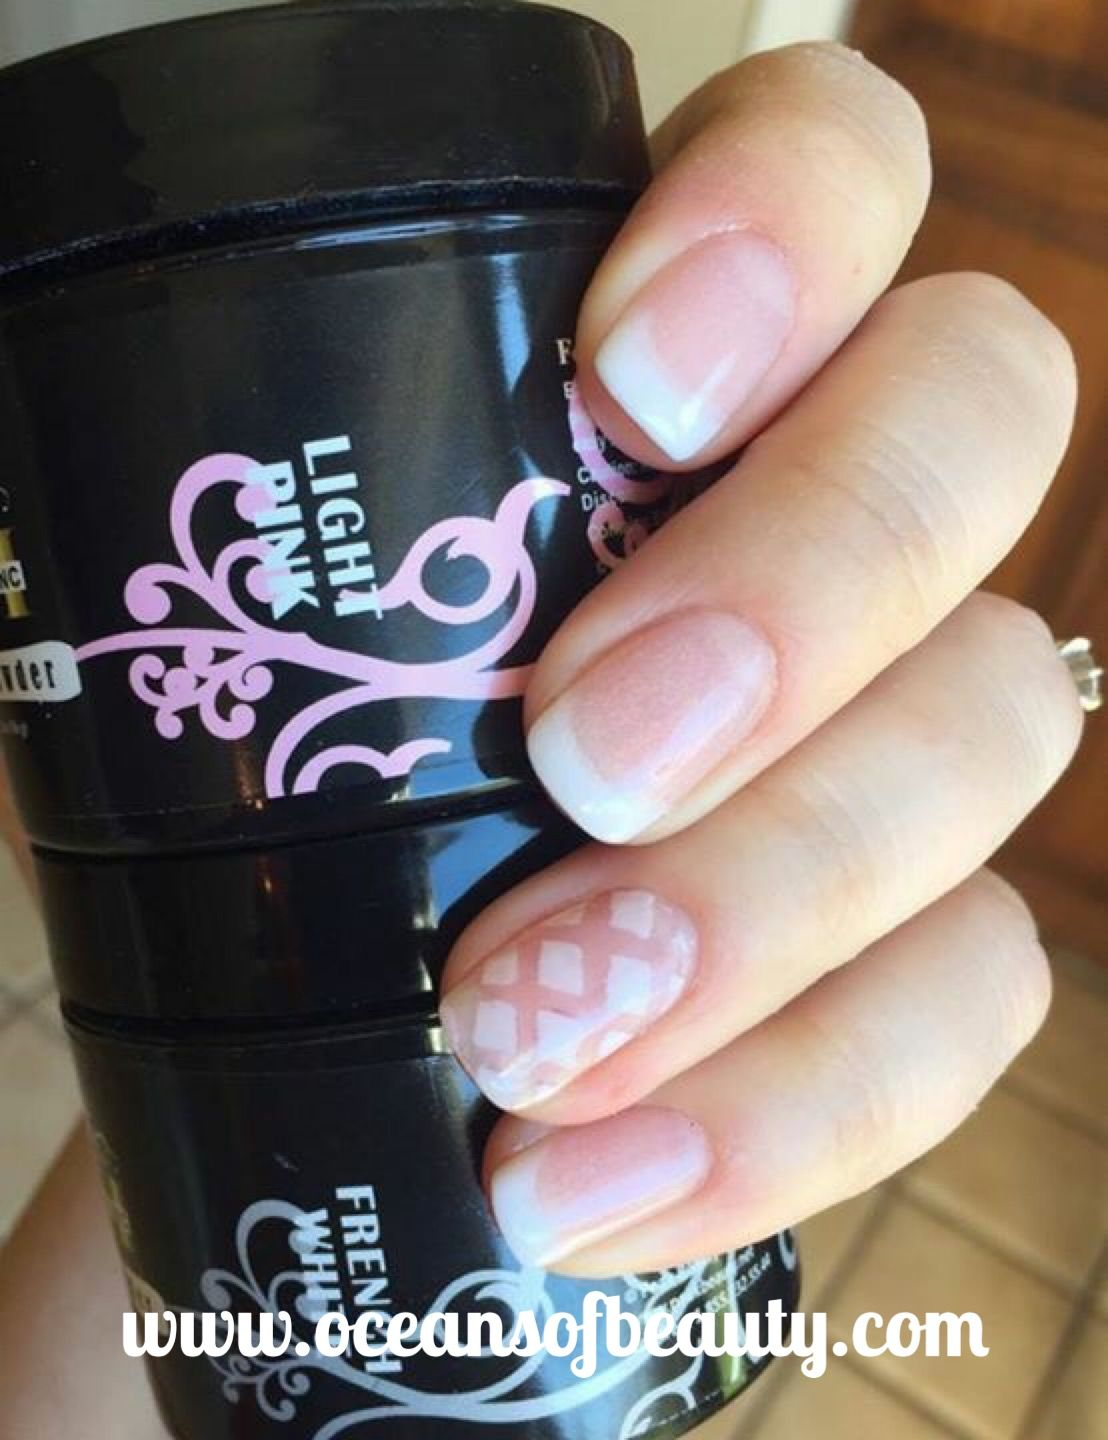 Pin by CourtneyPhillippy on Beauty | Dipped nails, Powder